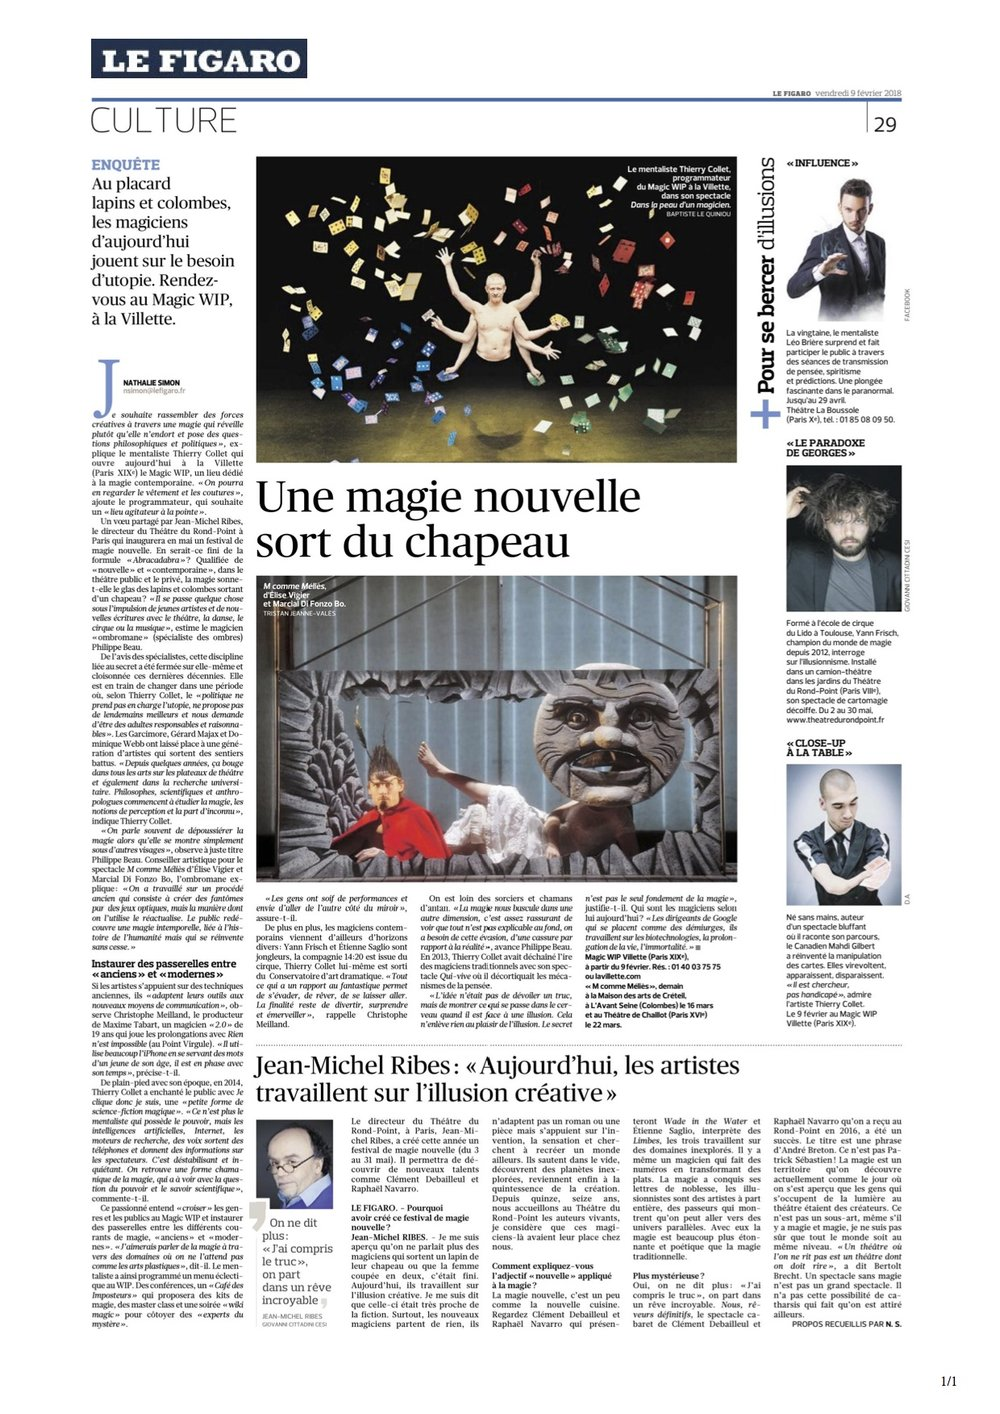 magic_wip_le_figaro_9-02-2018.jpg